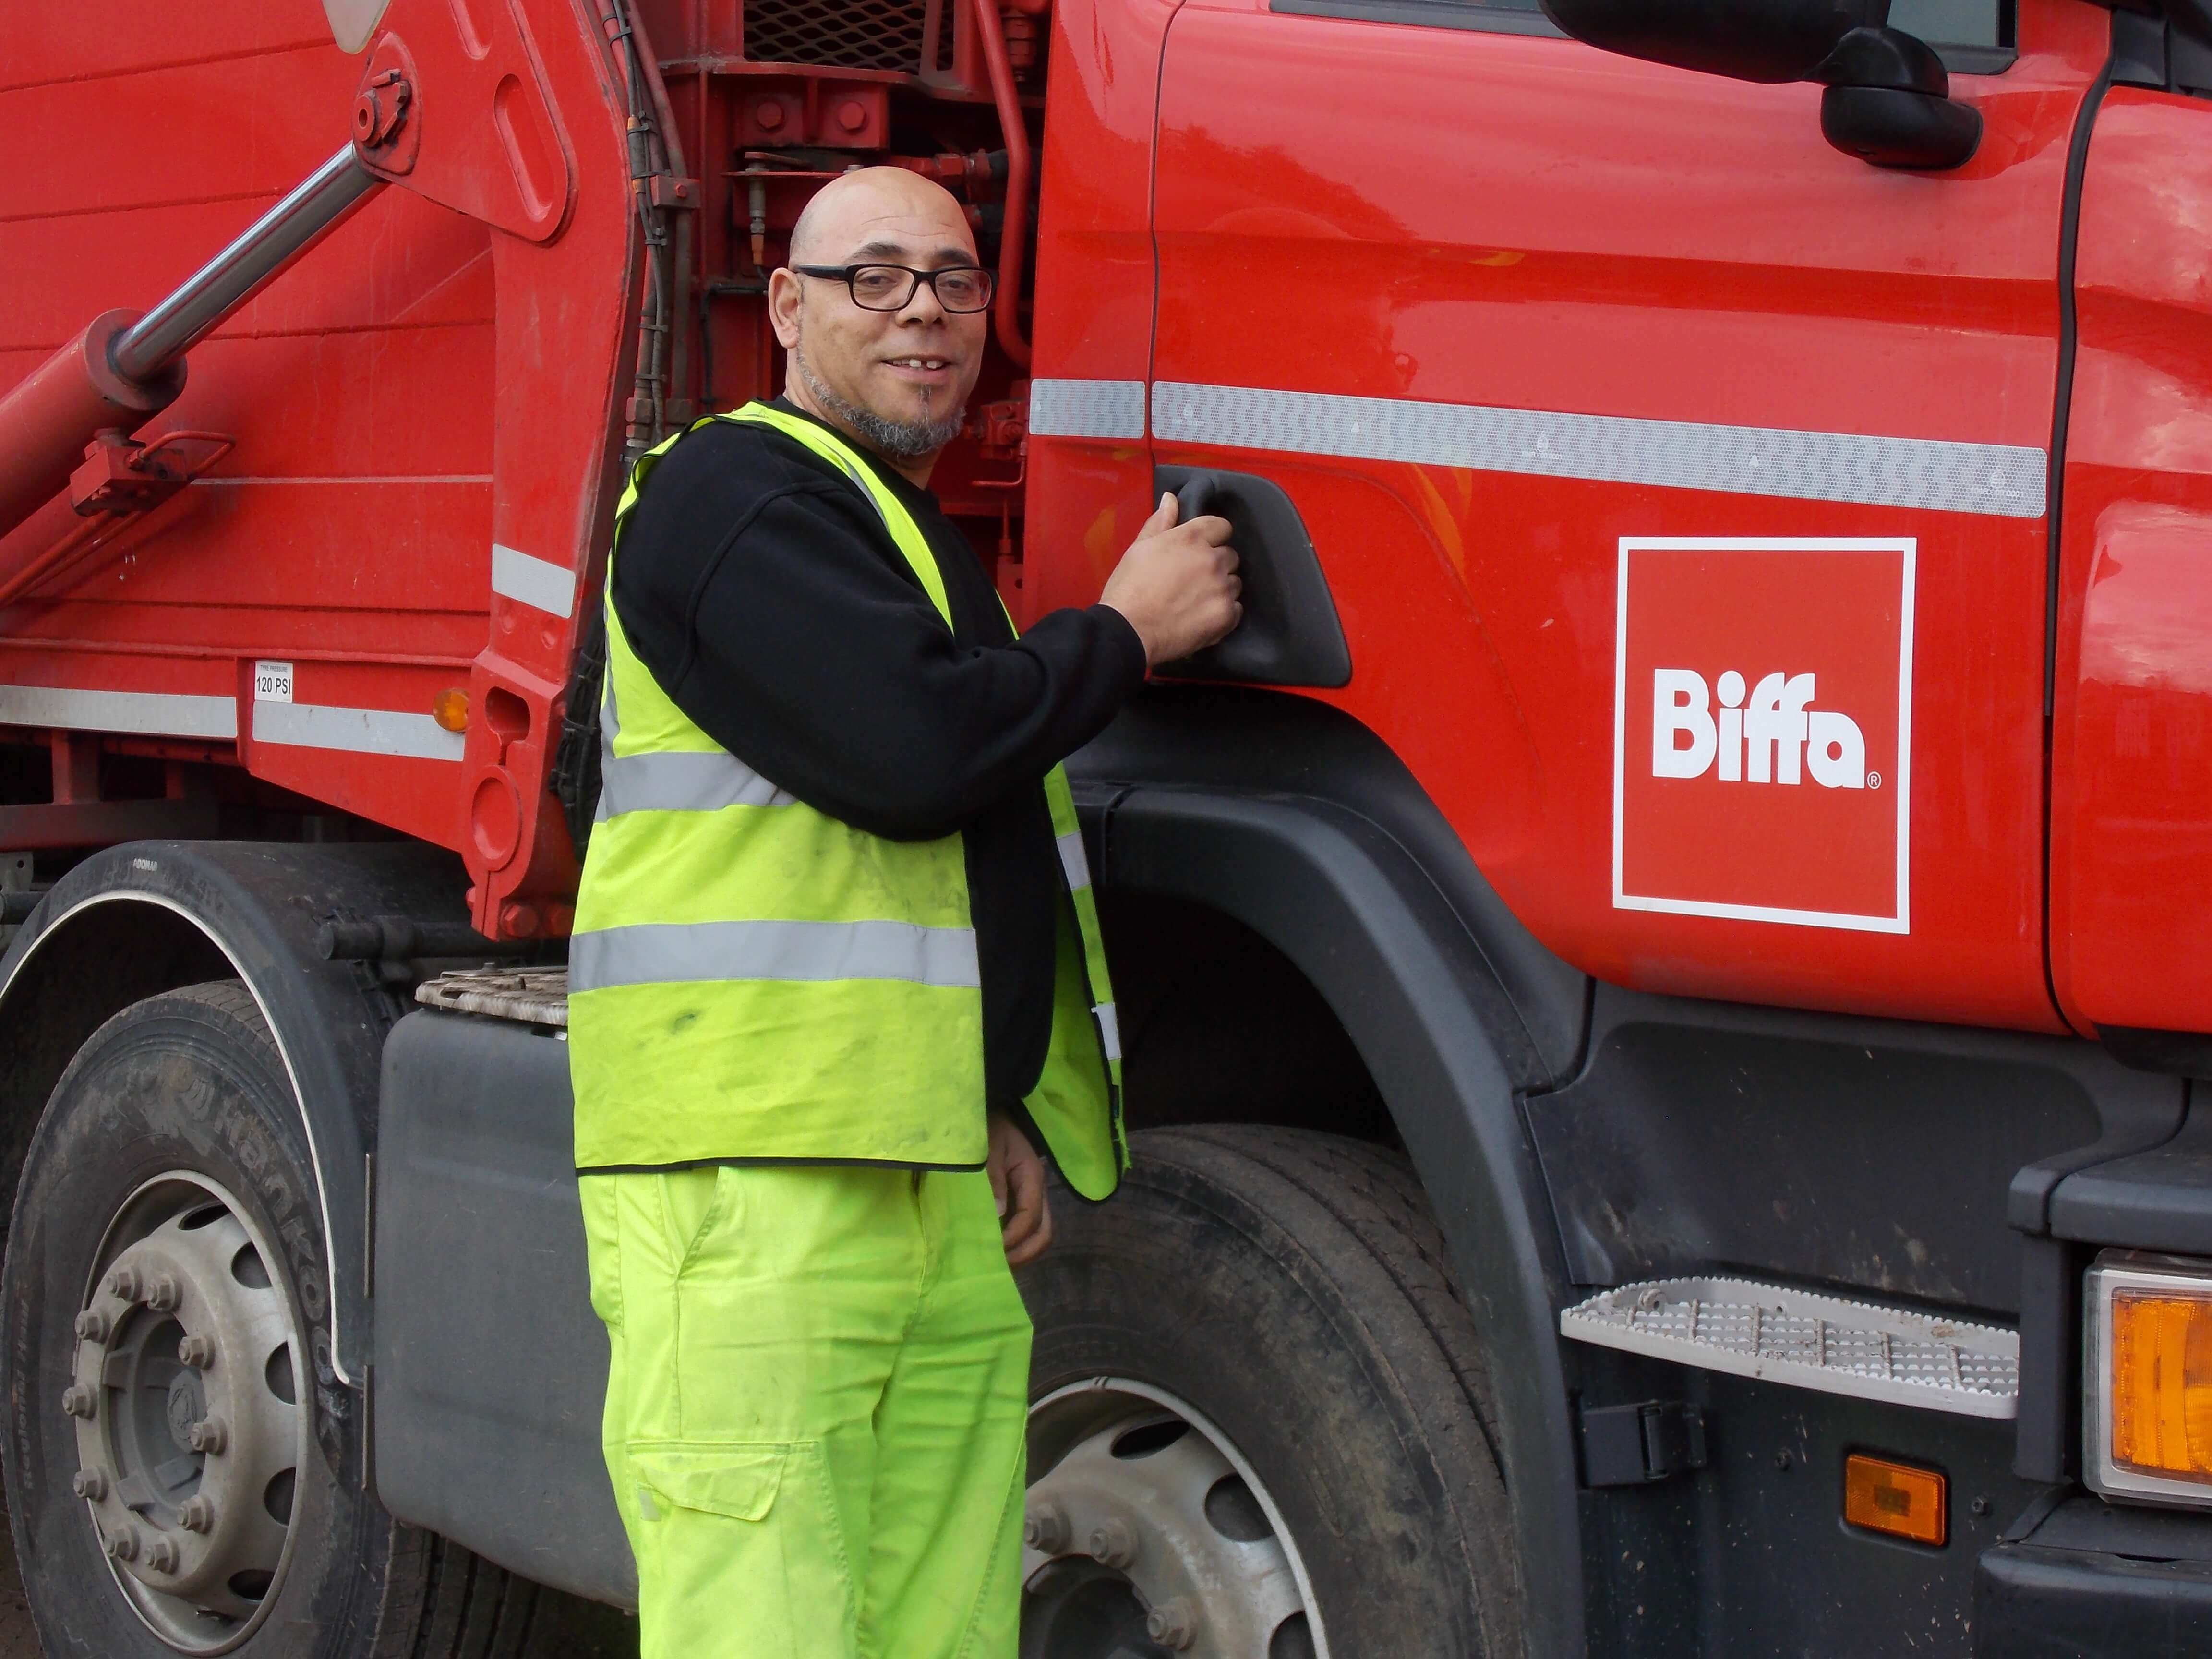 A Day in the Life of a Biffa Driver